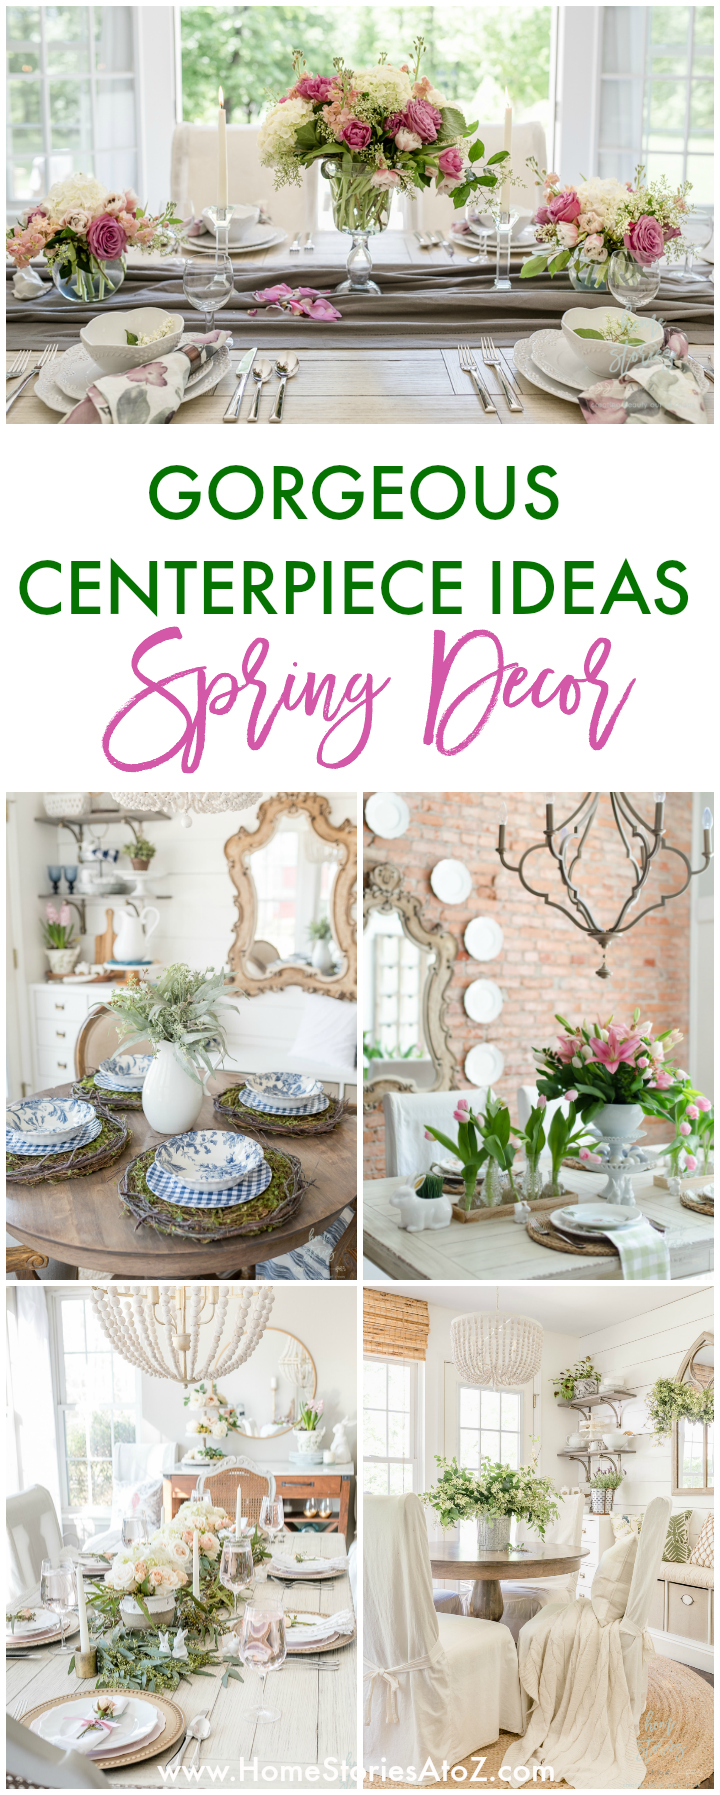 Spring Decor Ideas - Gorgeous Centerpiece Ideas by Home Stories A to Z